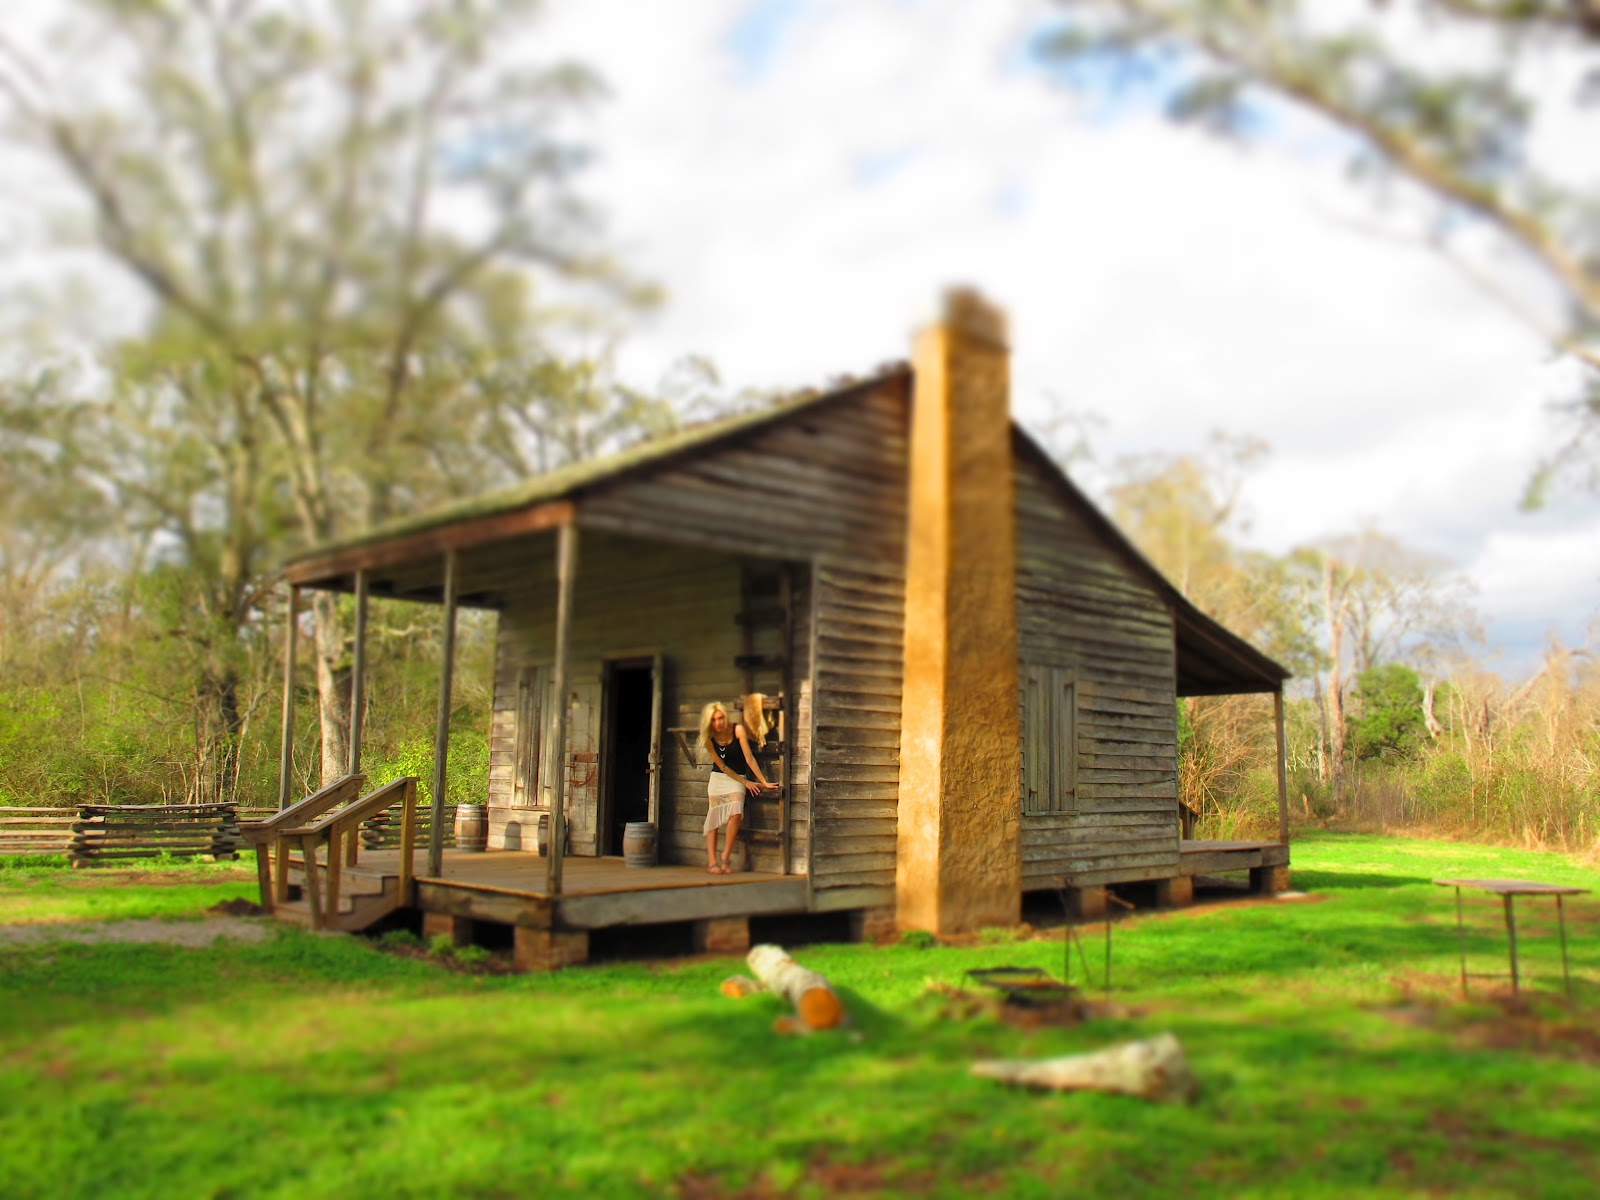 1000 images about cajun loves on pinterest canes Cajun cottage plans